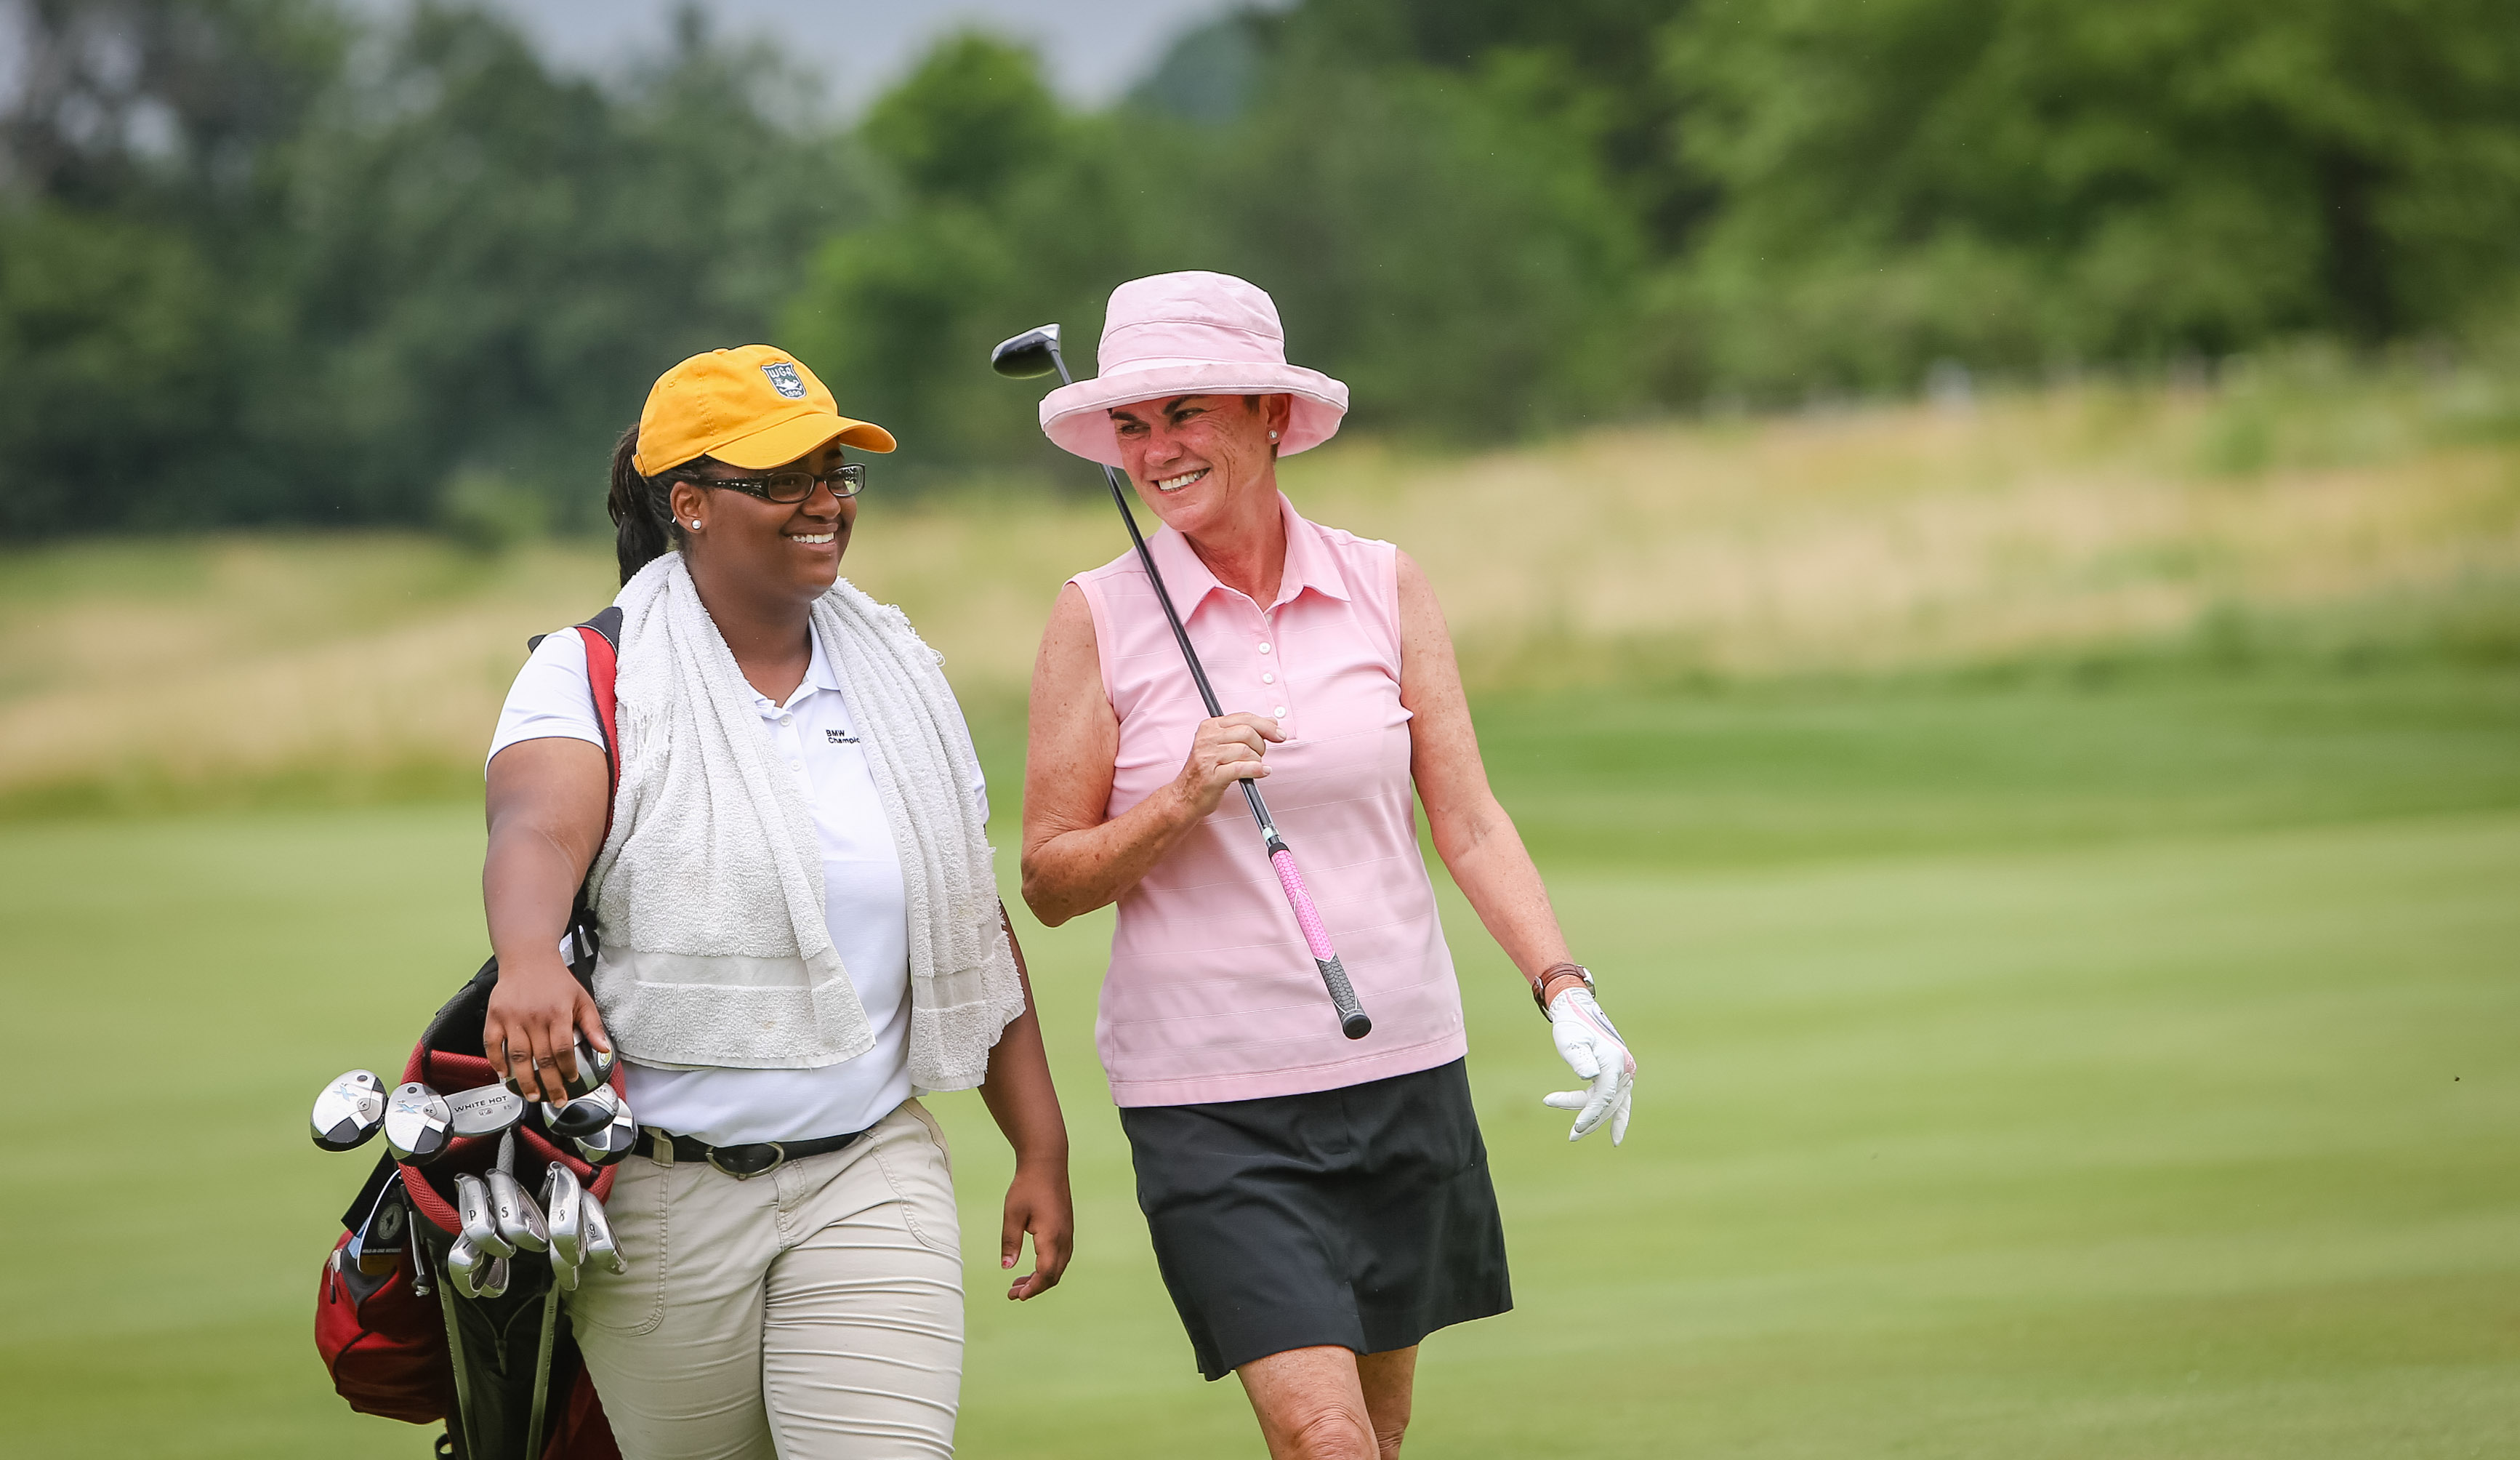 The 18-year-old Jones says caddying builds character and teaches her to deal with any type of personality. (Photo:©Charles Cherney Photography)